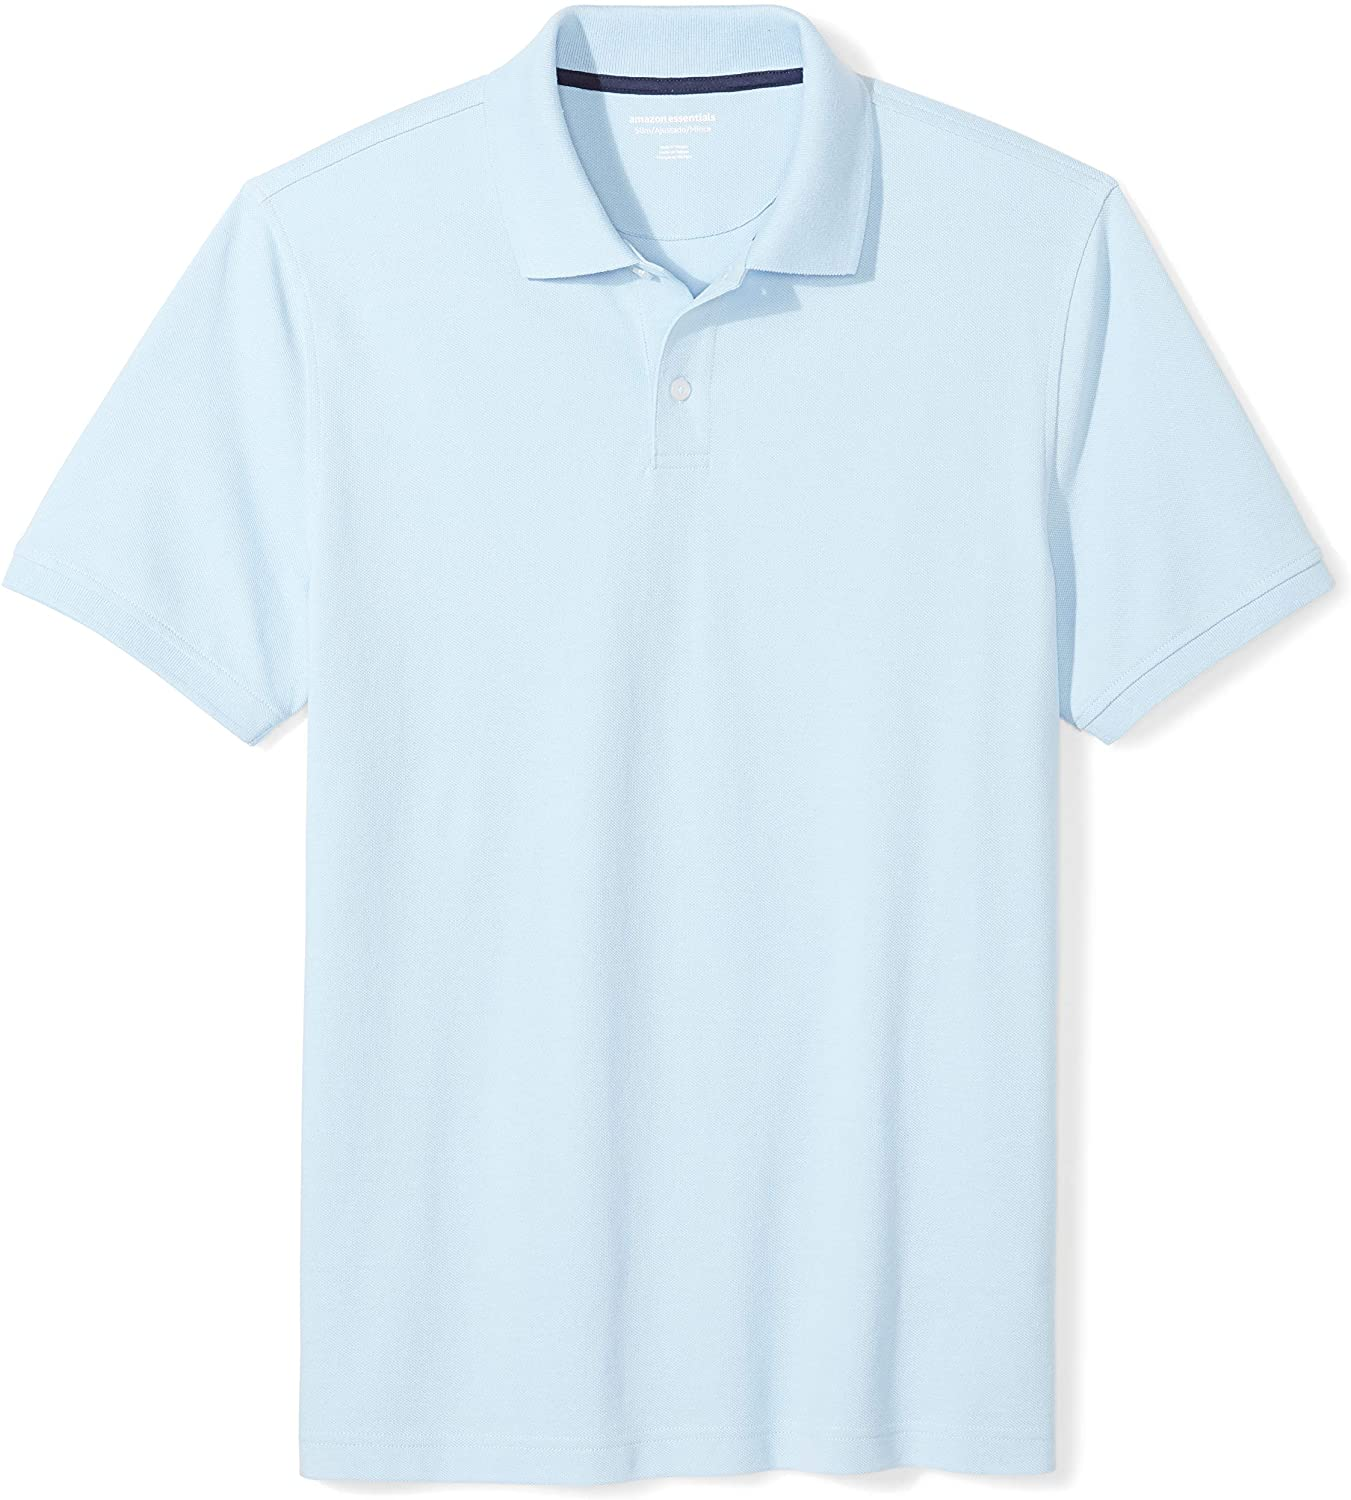 Classier: Buy Essentials Essentials Men's Slim-Fit Cotton Pique Polo Shirt